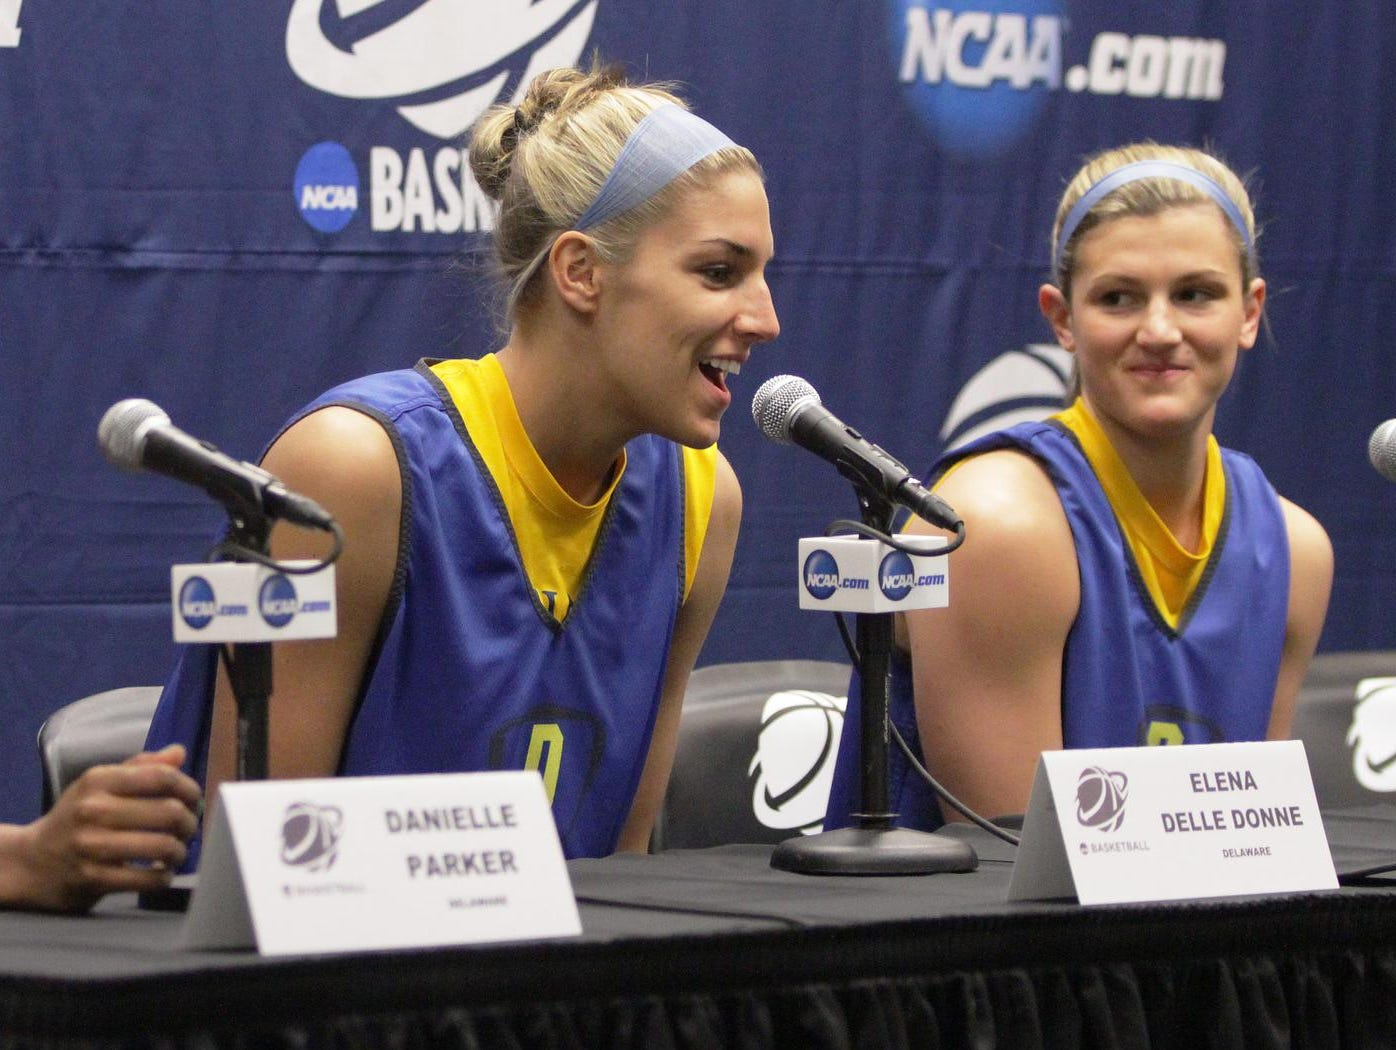 Delaware's (from left) Danielle Parker, Elena Delle Donne and Lauren Carra participate in a press conference on the eve of the Blue Hens' opening round NCAA tournament game against West Virginia on March 23, 2013, at the Bob Carpenter Center.